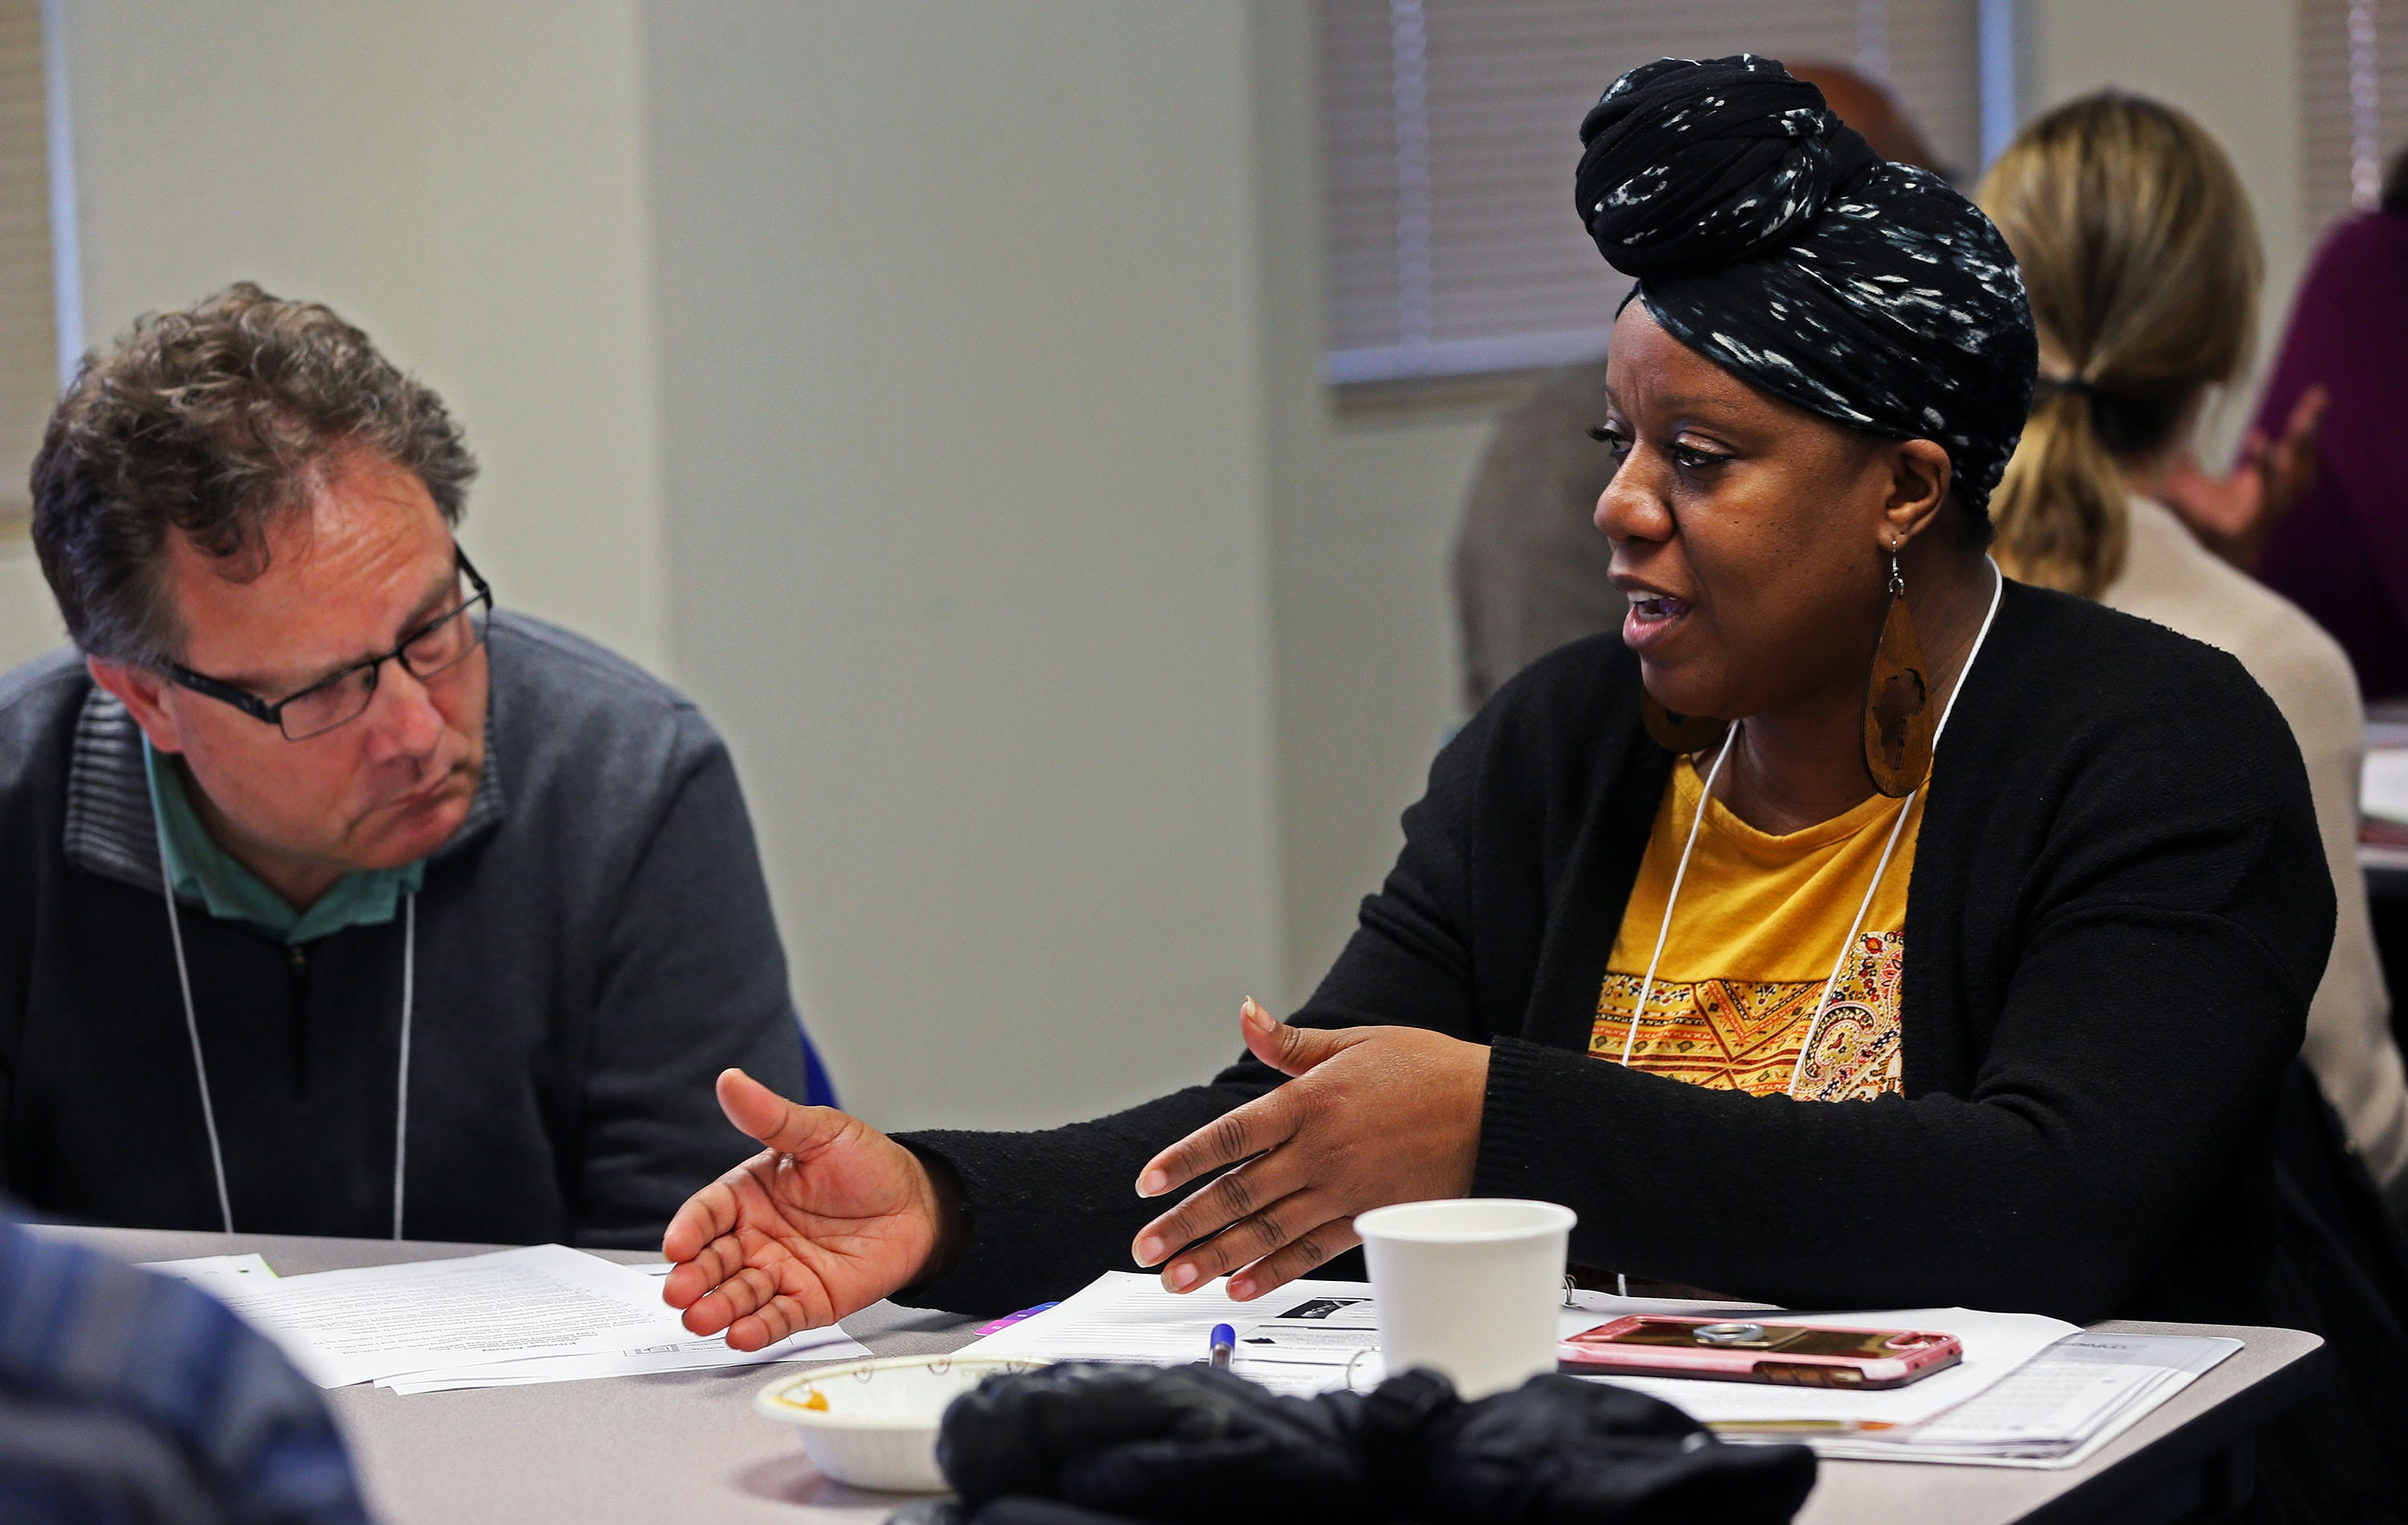 Yvonne Scott, right, shares her opinion on race as Aaron Schutz, left, listens on Thursday, Nov. 7, 2019 at the YWCA.